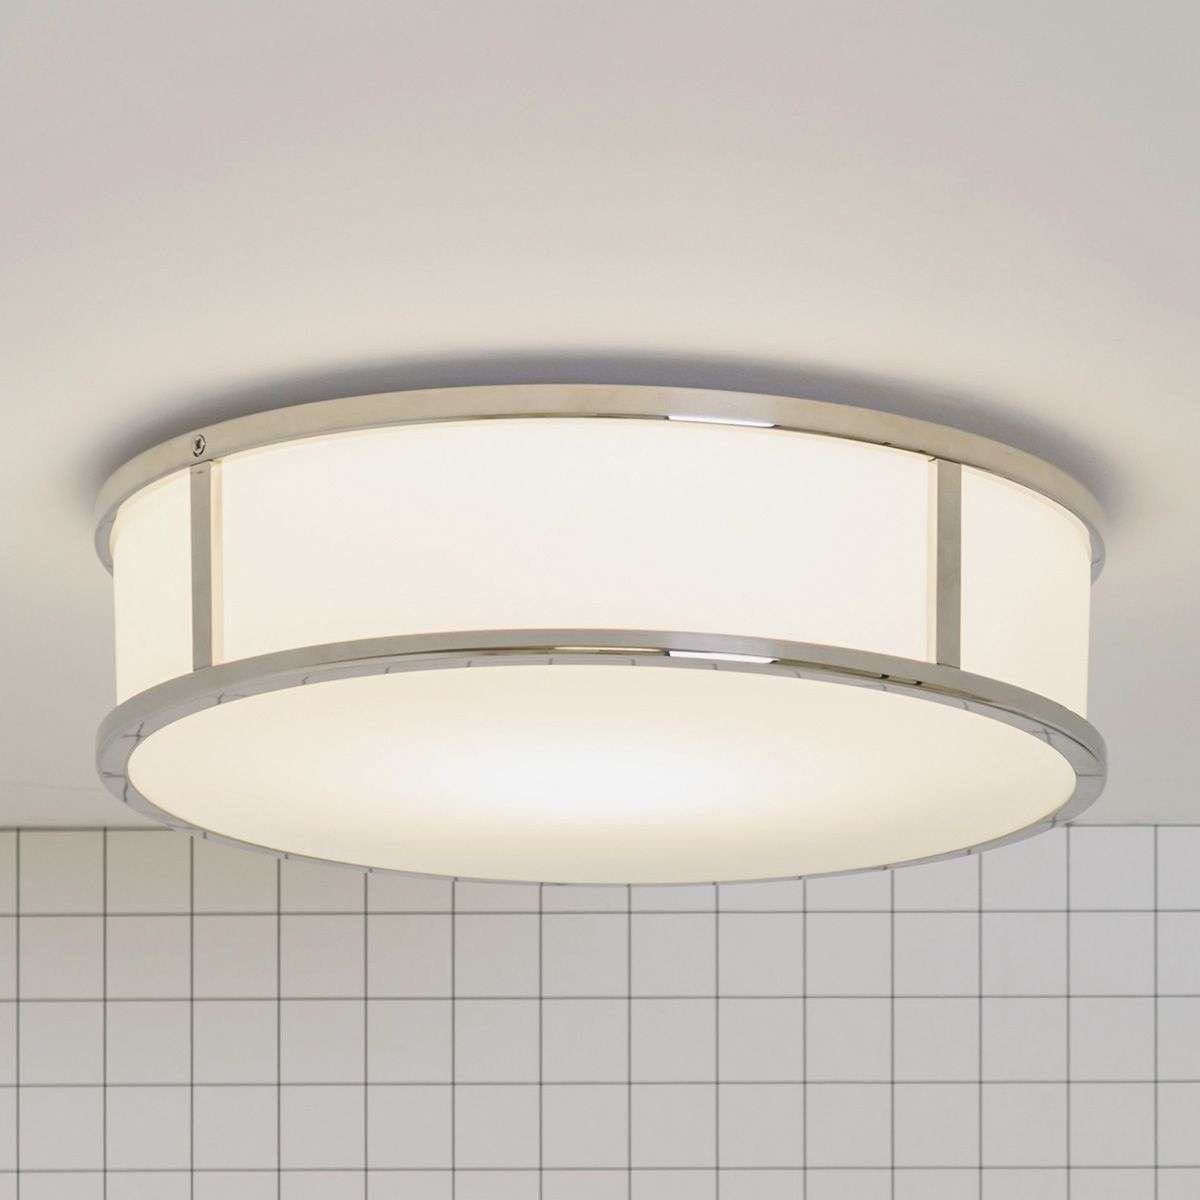 Mashiko Round 300 Bathroom Ceiling Light